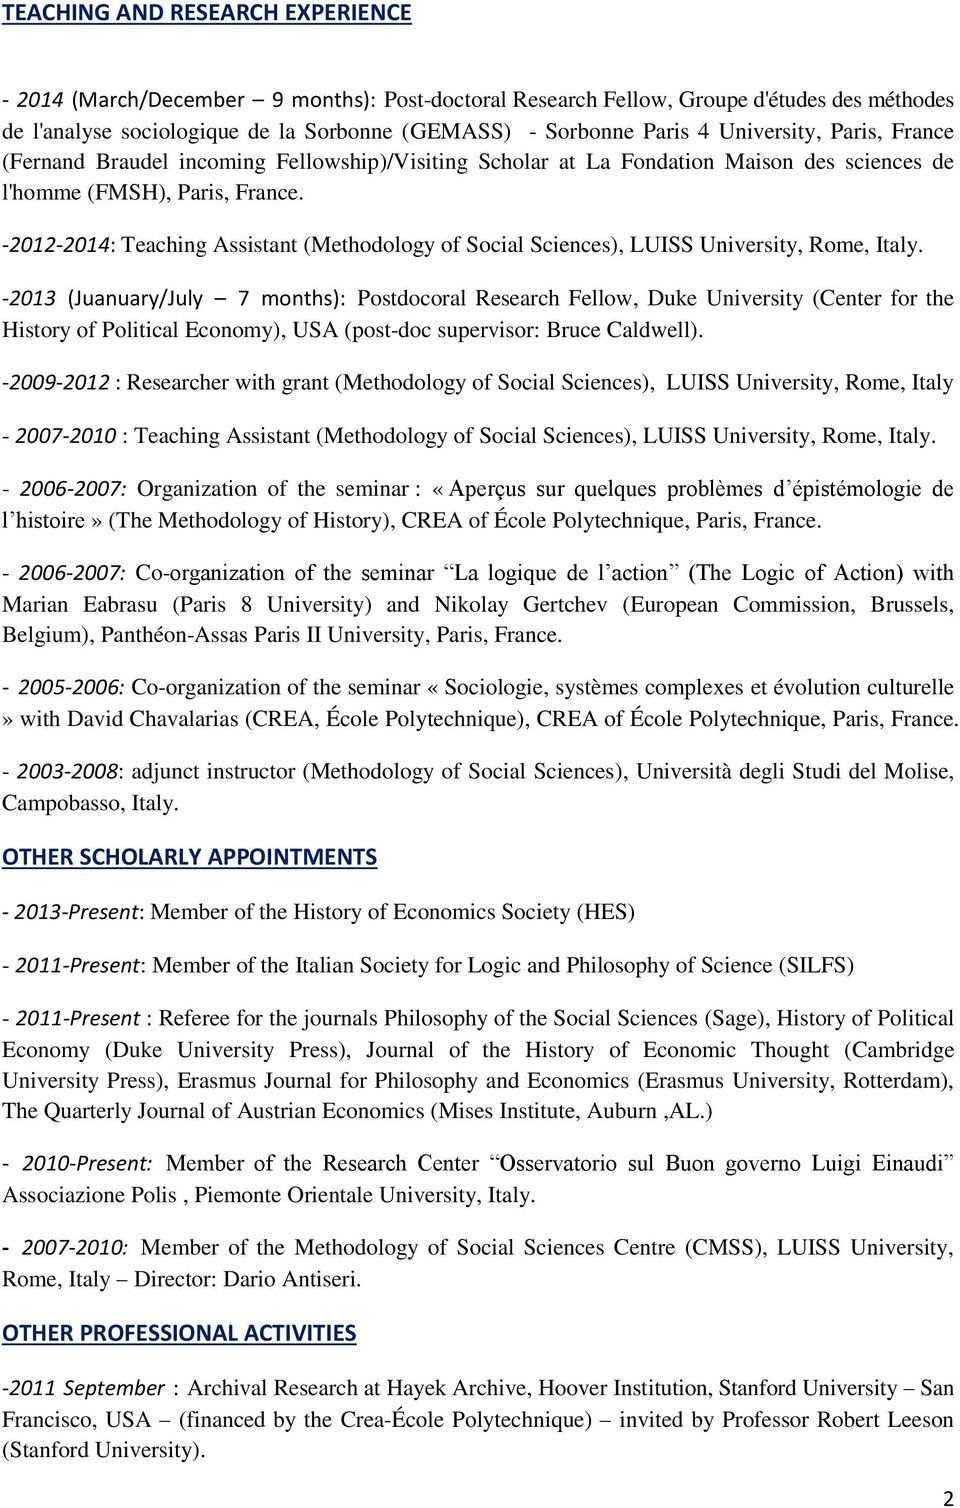 -2012-2014: Teaching Assistant (Methodology of Social Sciences), LUISS University, Rome, Italy.